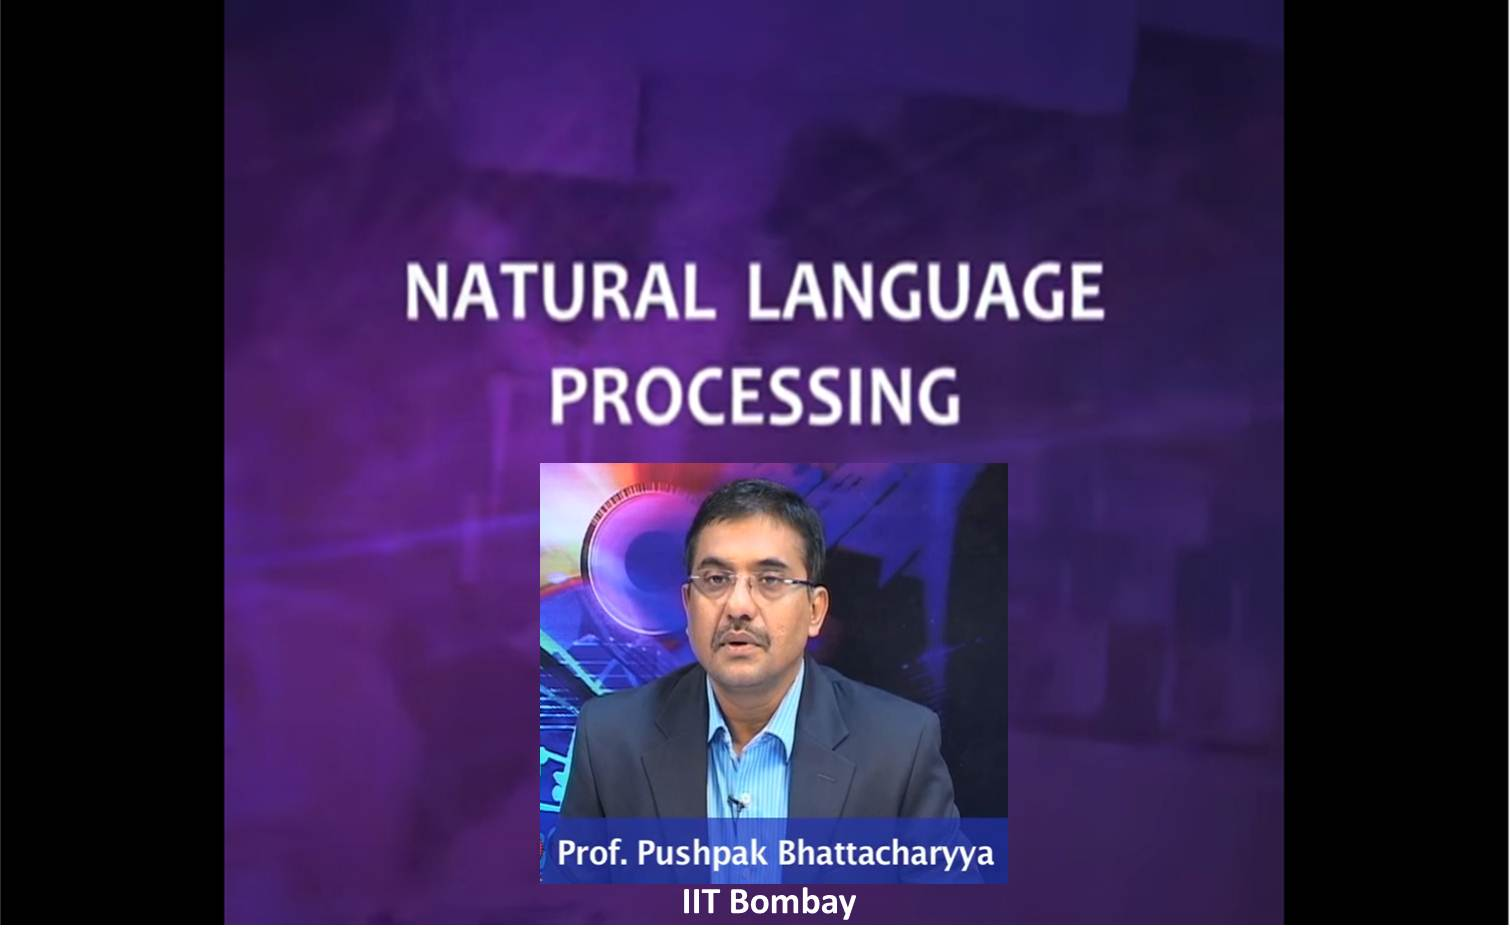 http://study.aisectonline.com/images/SubCategory/Video Lecture series on Natural Language Processing by Prof. Pushpak Bhattacharyya, IIT Bombay..jpg